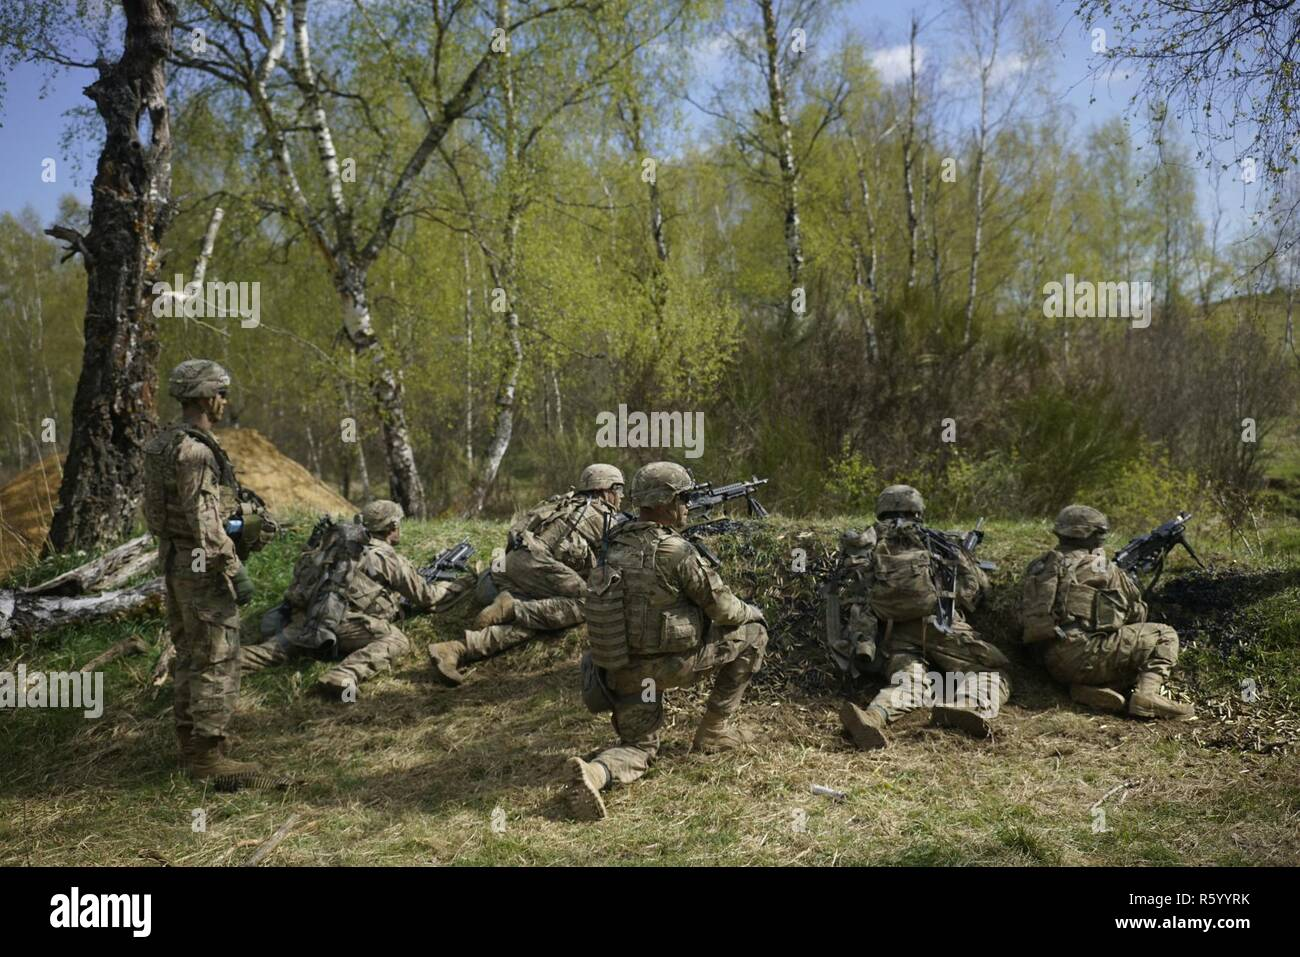 U.S. Soldiers of Comanche Troop, 4th Squadron, 10th Cavalry Regiment, 3rd Armored Brigade Combat Team, 4th Infantry Division provides suppressive fire with an M240 while conducting a live fire operation during Exercise Combined Resolve VIII at the Grafenwoehr Training Area, Germany April 24, 2017. Exercise Combined Resolve VIII is a multinational exercise designed to train the Army's Regionally Allocated Forces to the U.S. European Command. Combined Resolve VIII will include more than 3,400 participants from 10 nations. The goal of the exercise is to prepare forces in Europe to operate togethe - Stock Image